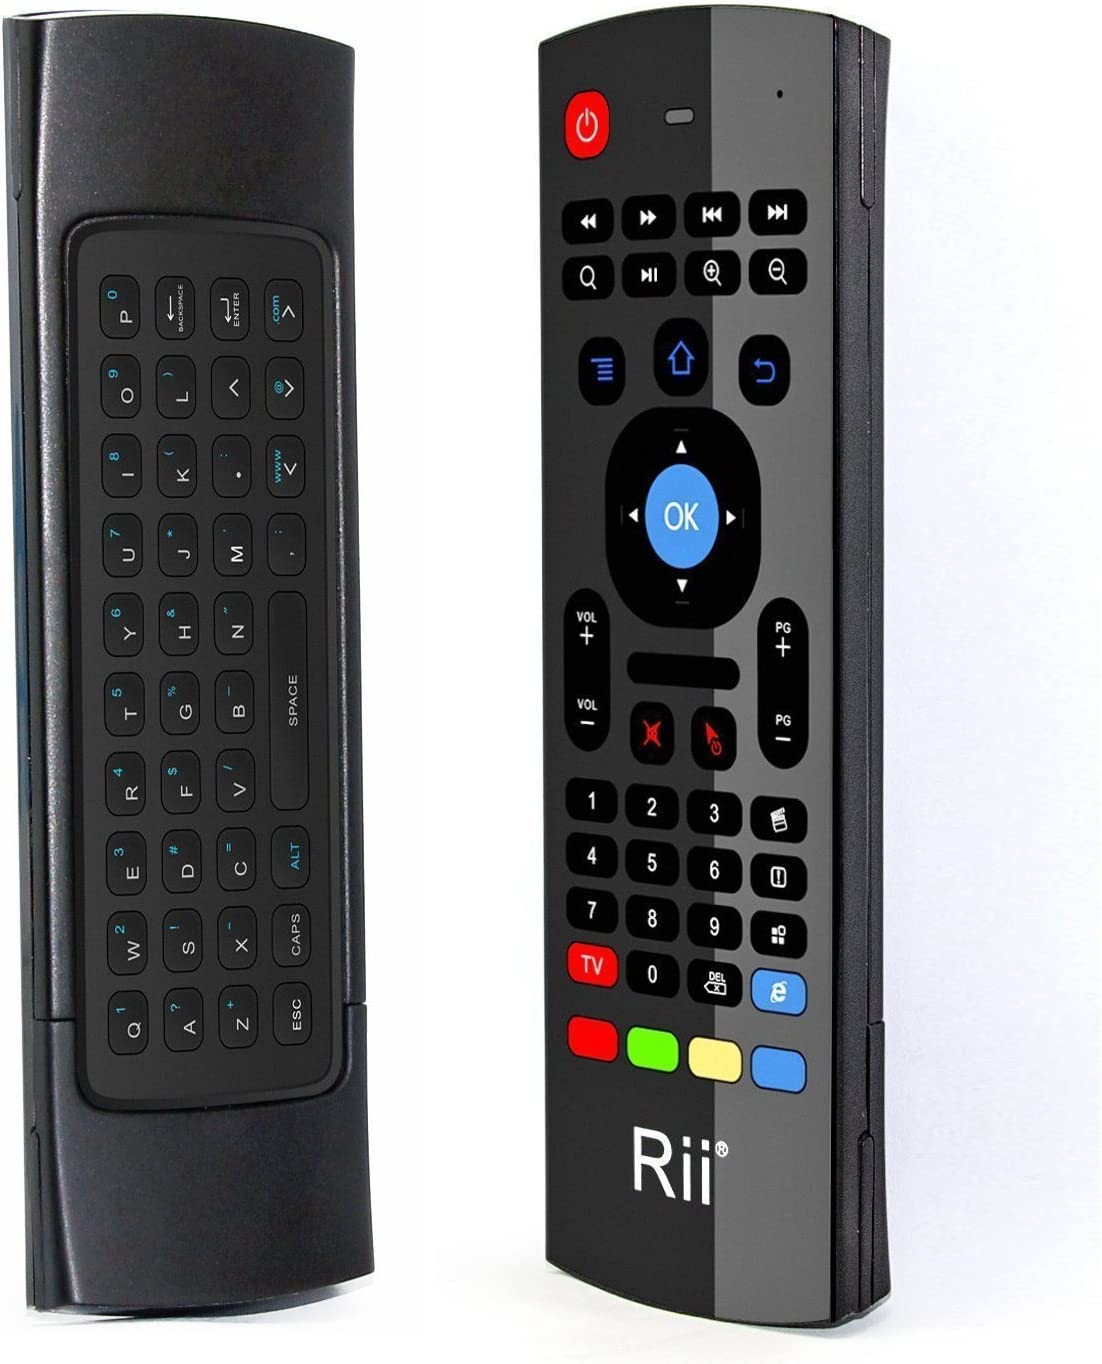 Rii MX3 Multifunction 2.4G Fly Mouse Mini Wireless Keyboard & Infrared Remote Control & 3-Gyro + 3-Gsensor